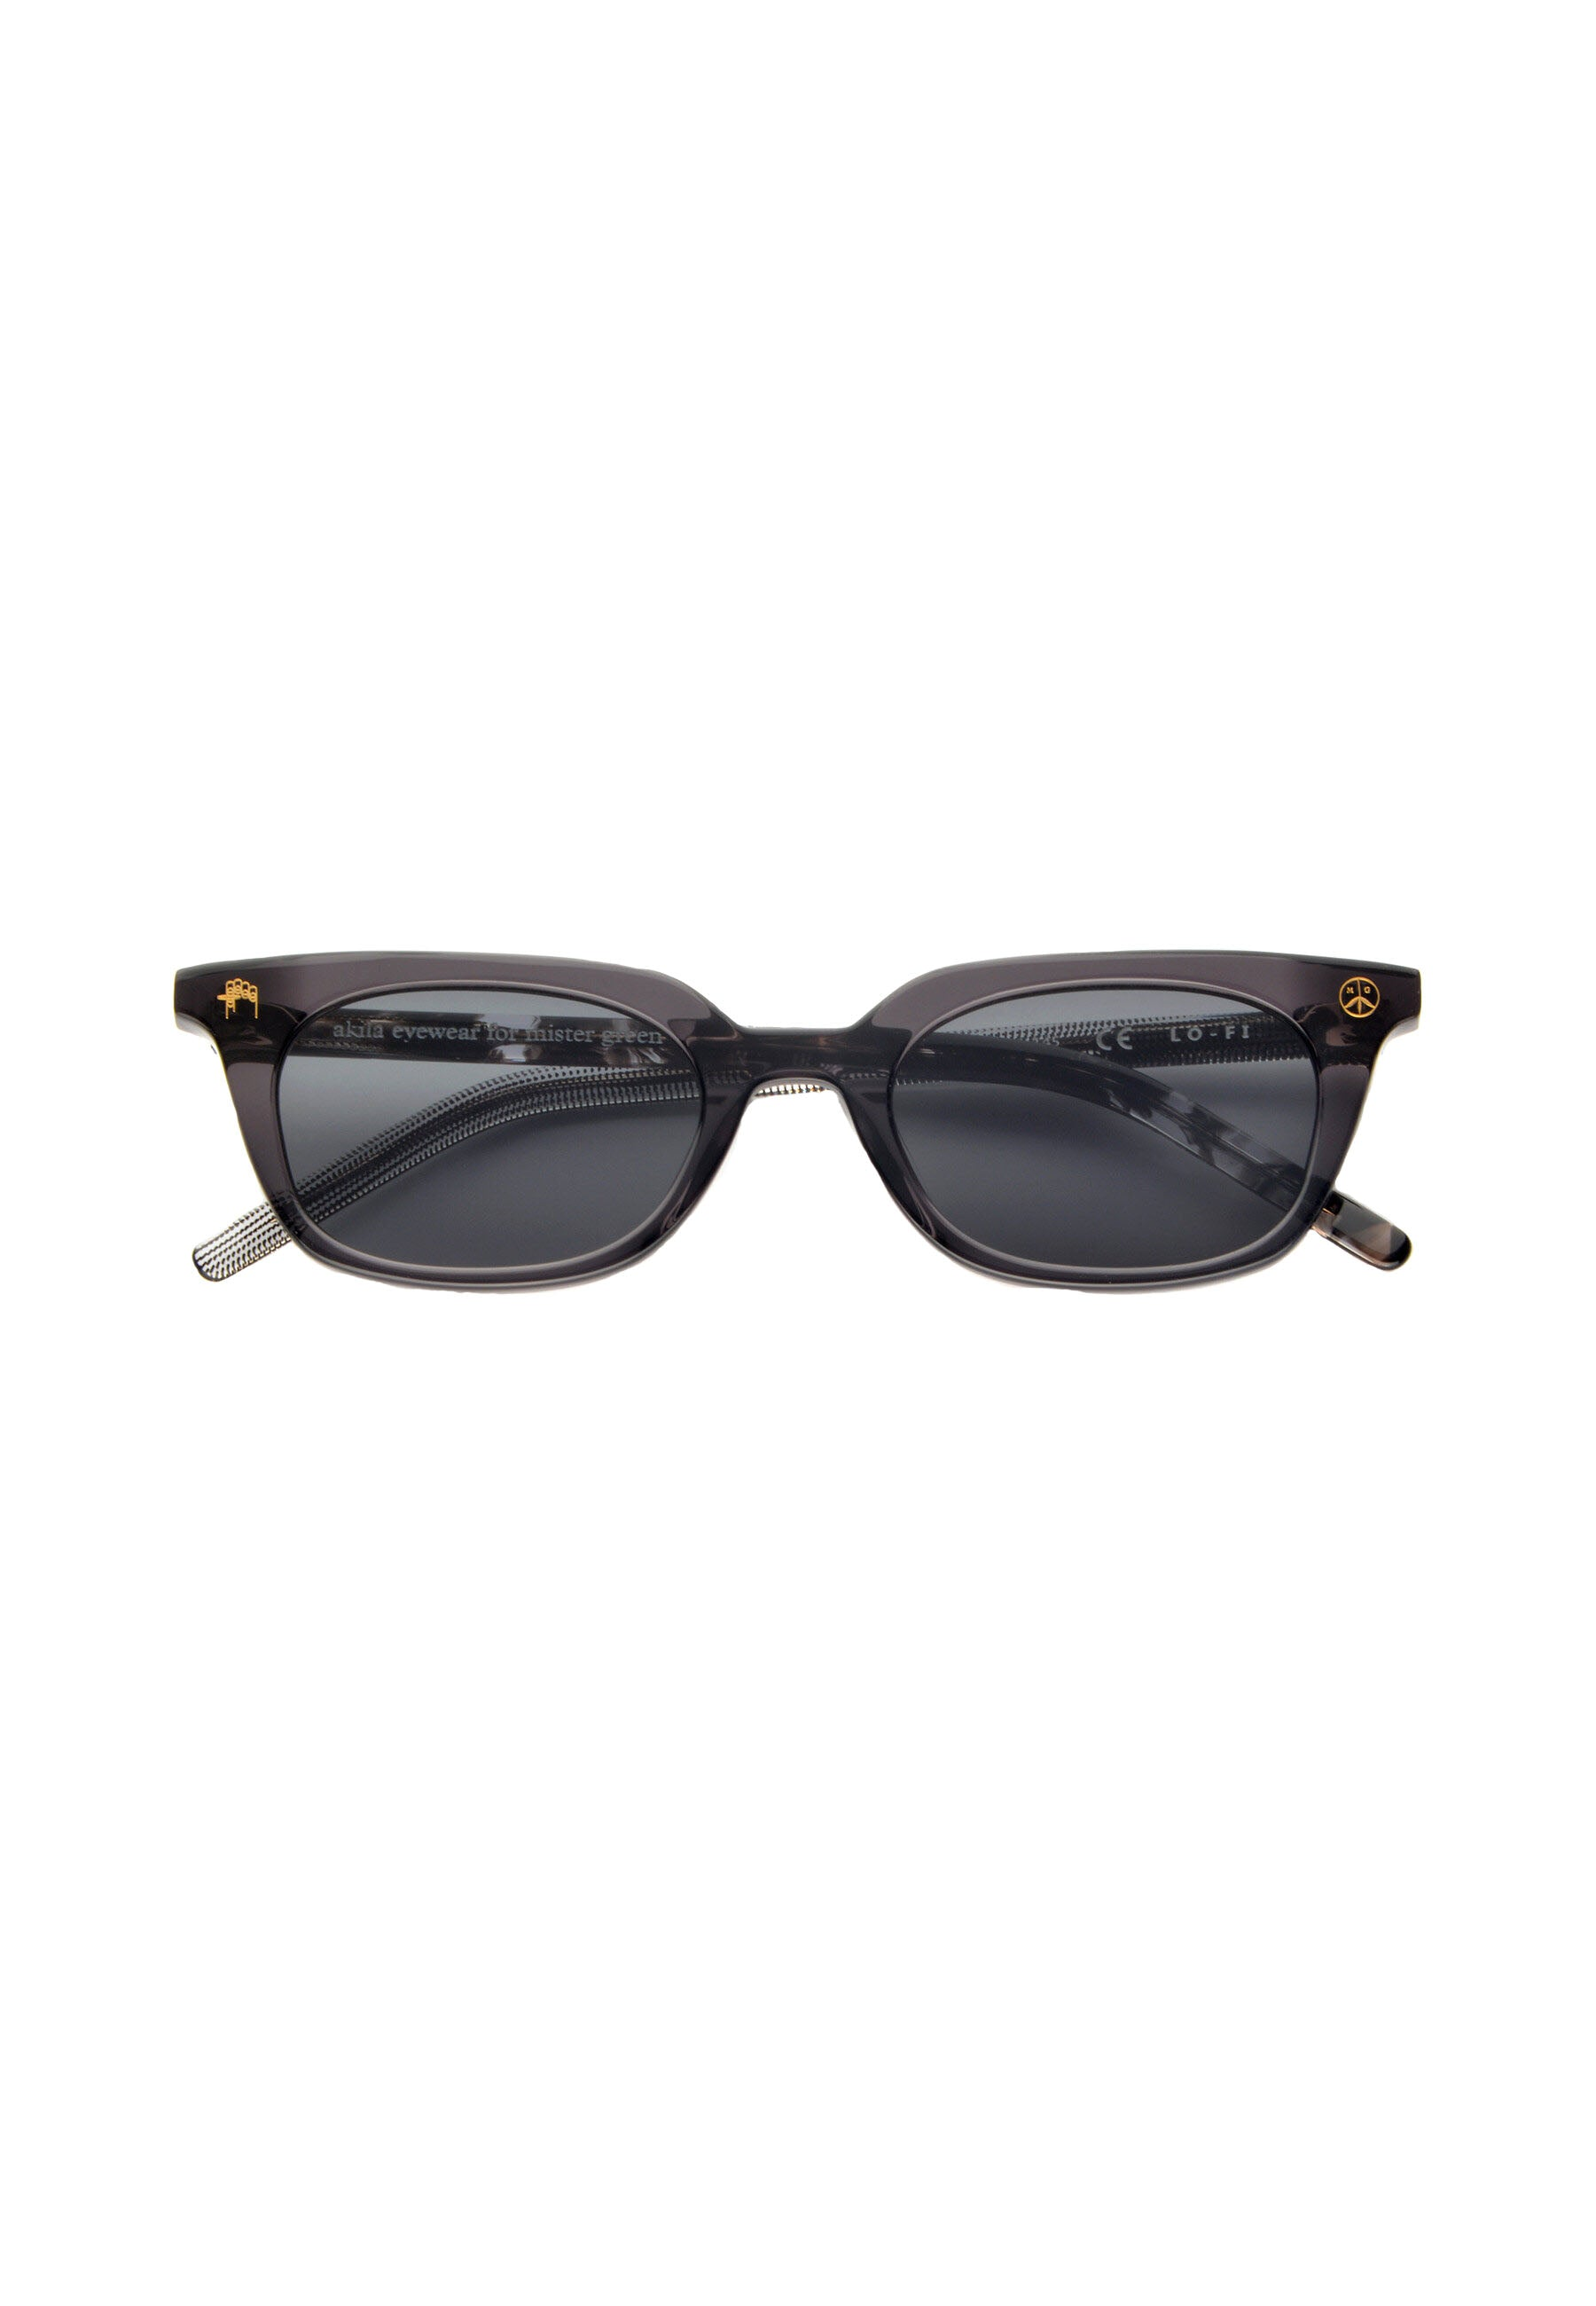 "Akila For Mister Green - Lo-Fi V1.2 - ""Heirloom"" Black Acetate / Black Lens"